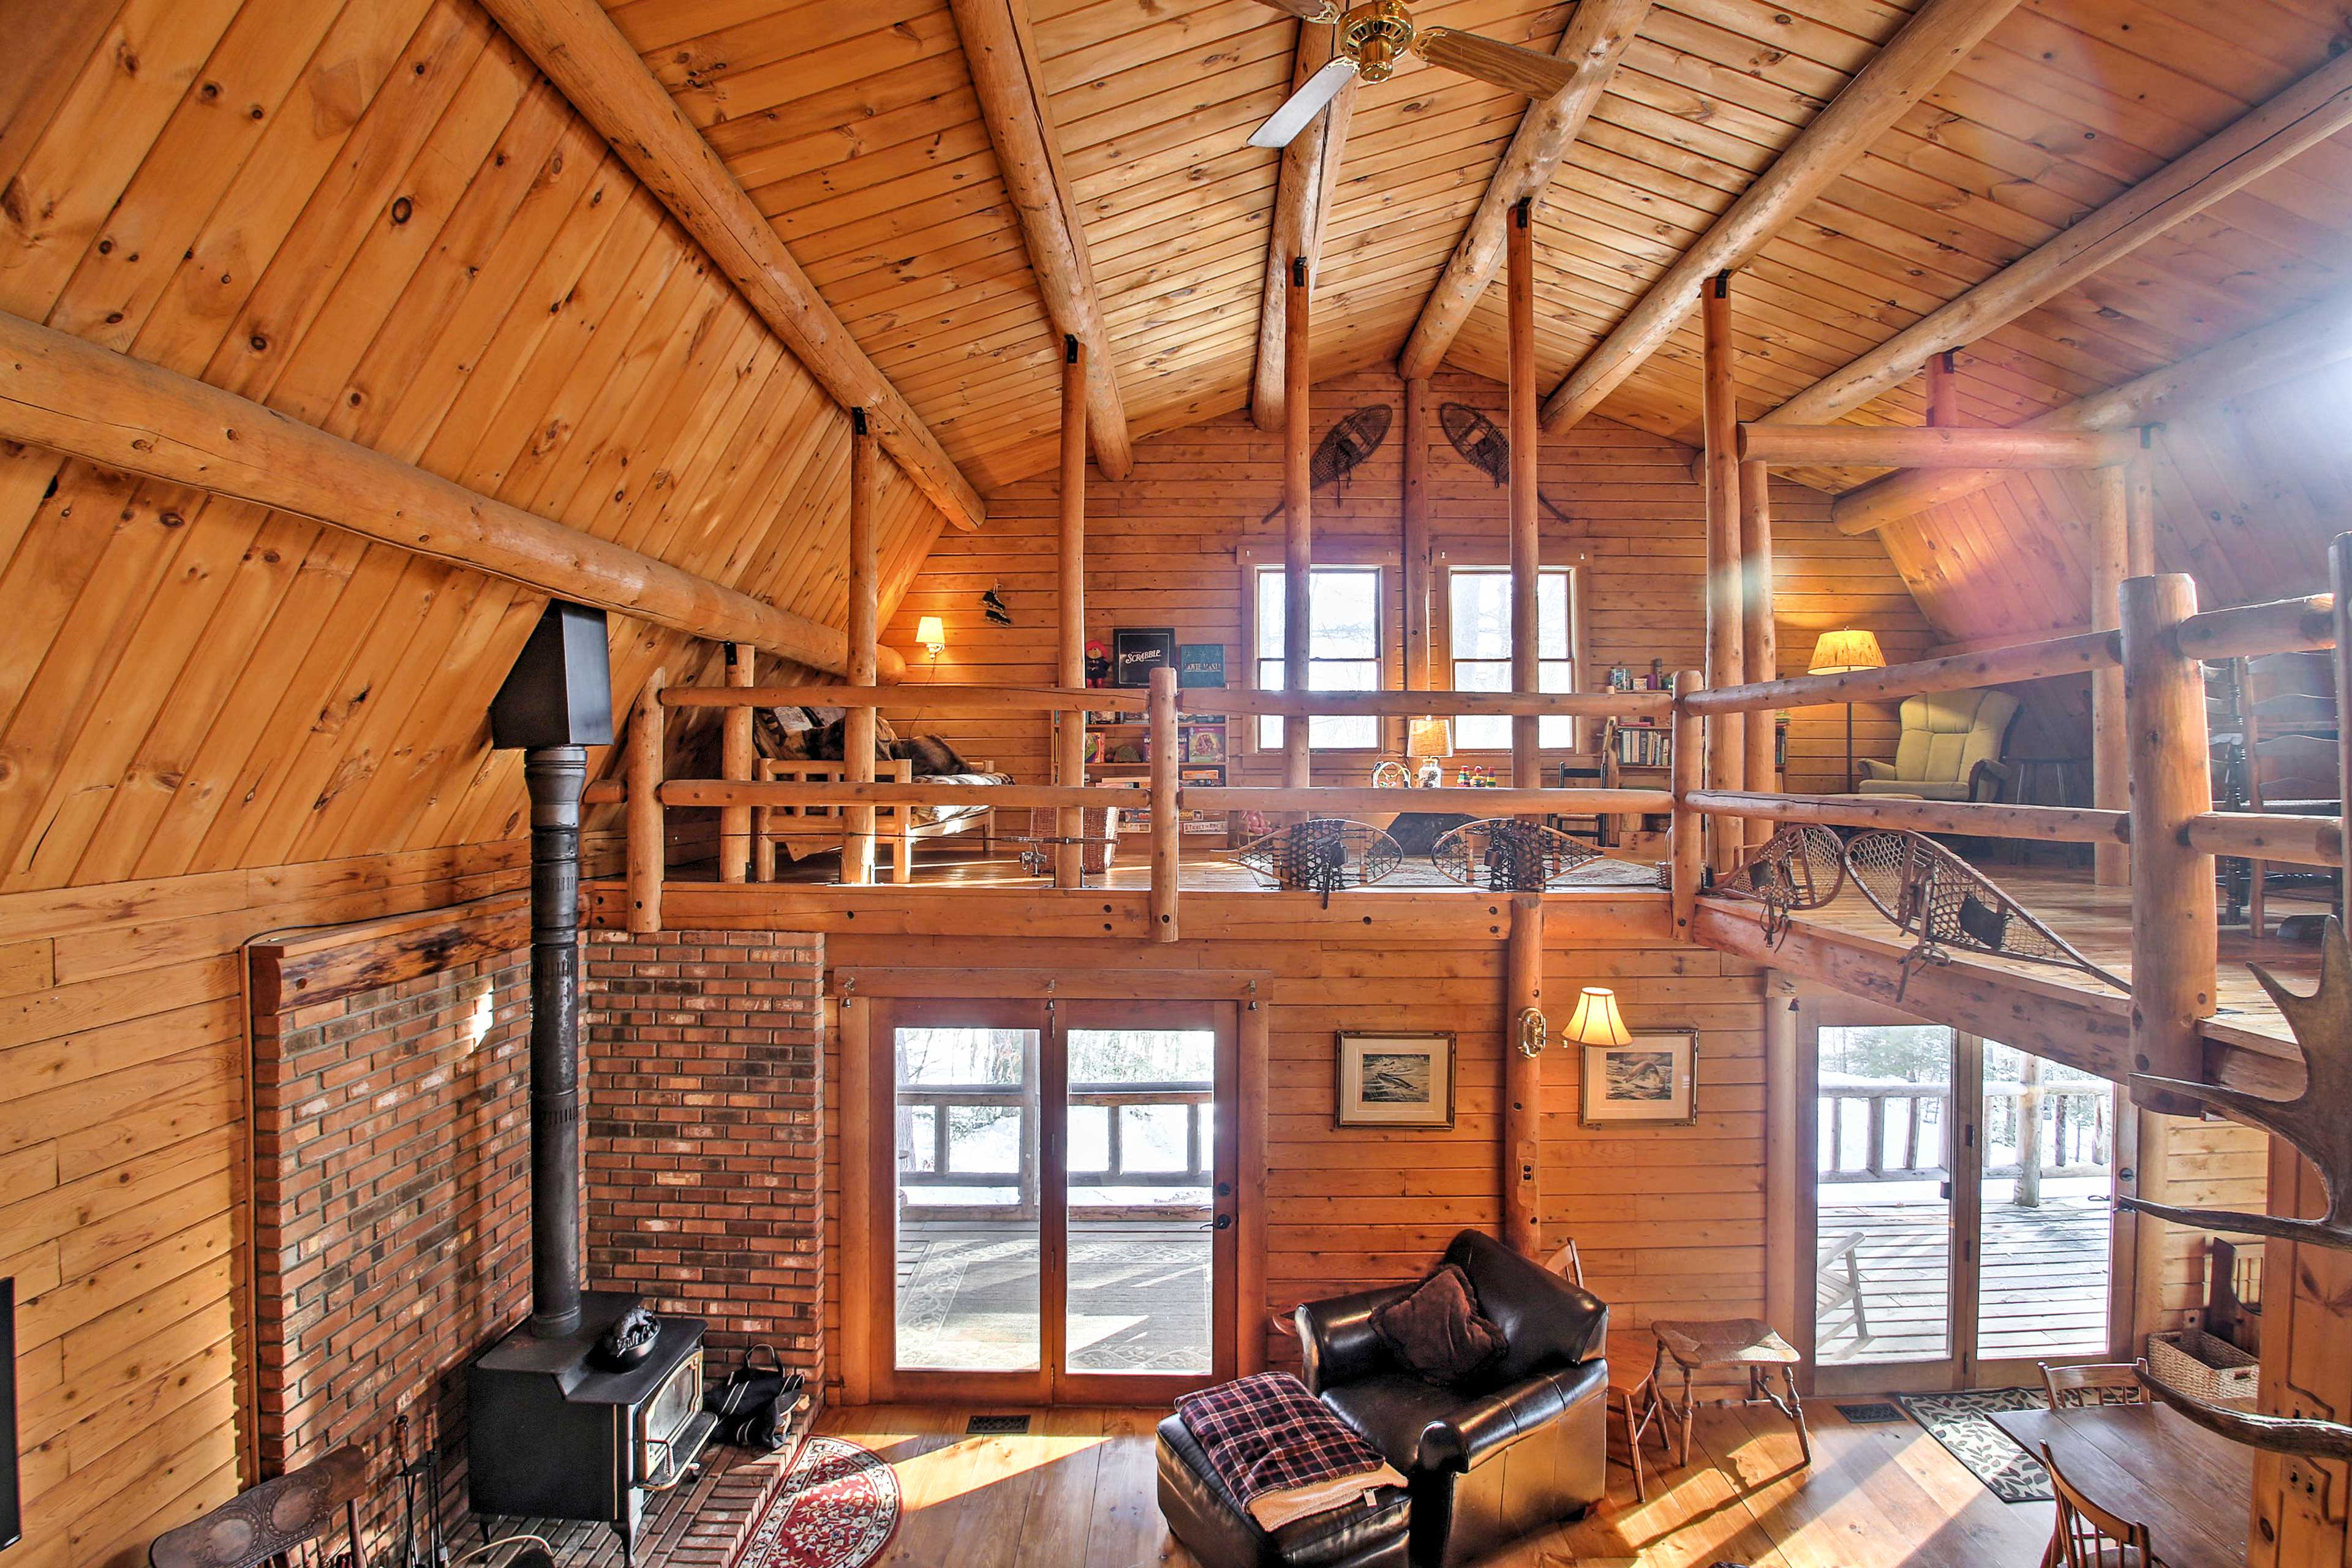 The loft area is a great place to relax or gather with your group.